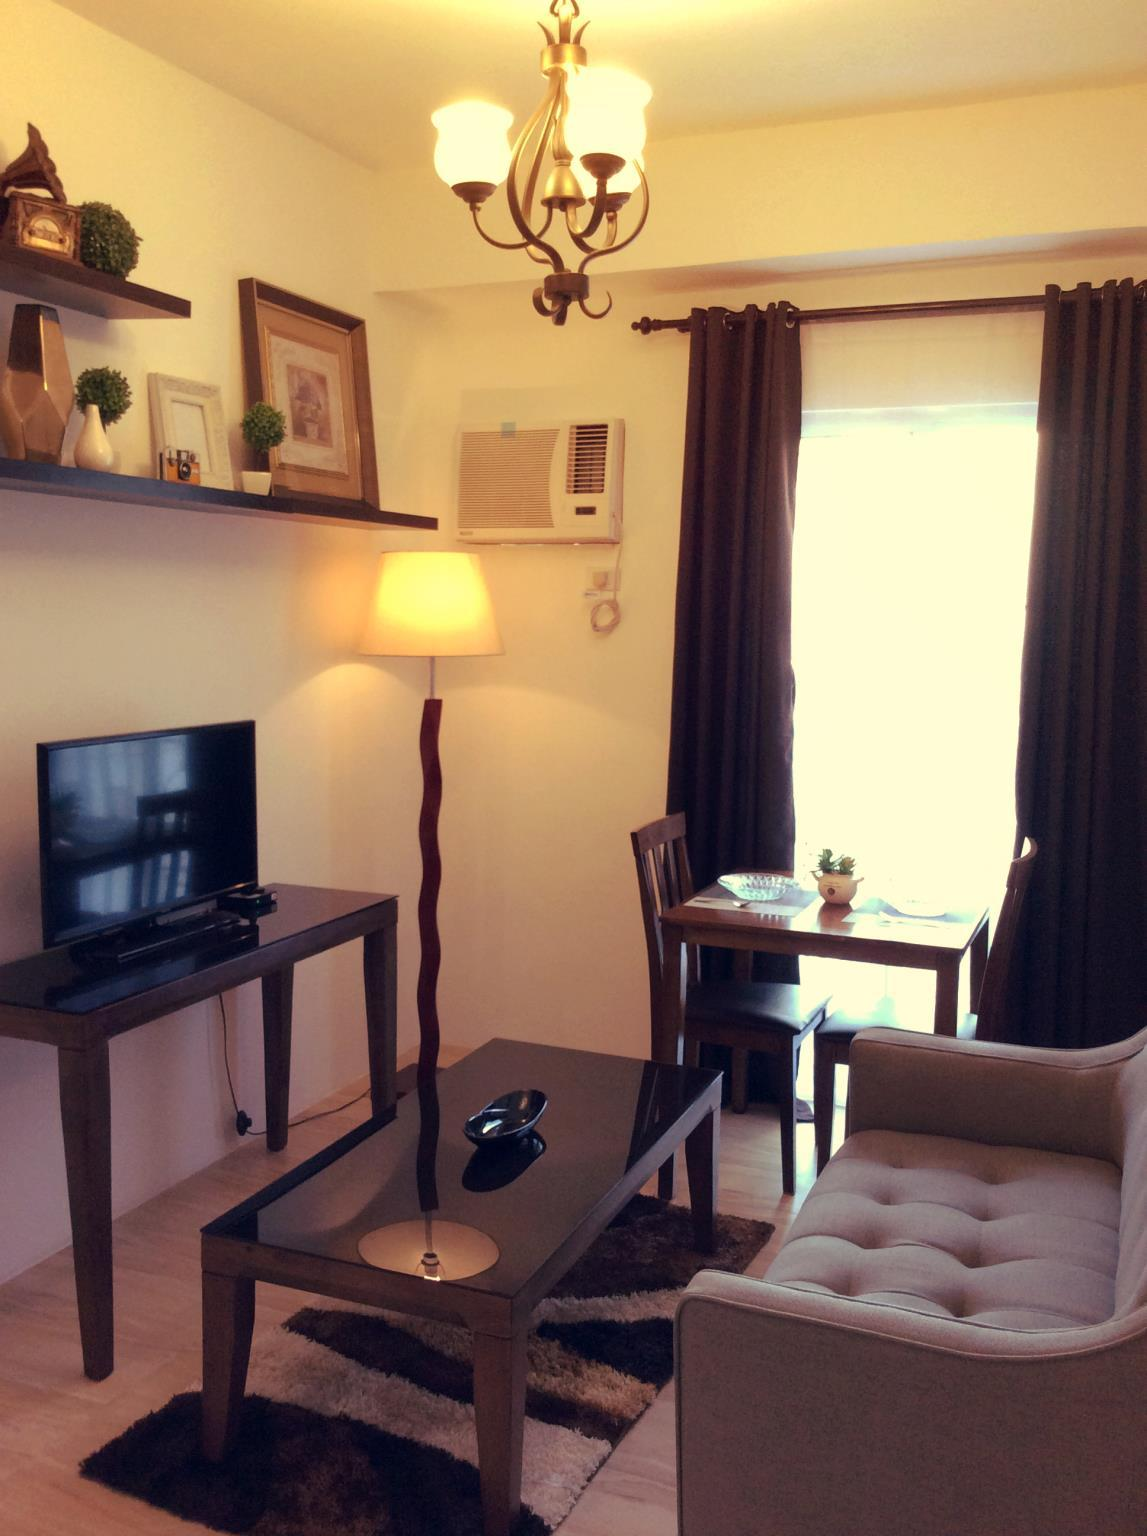 Fully Furnished 1 Bedroom Condo At Appleone Banawa